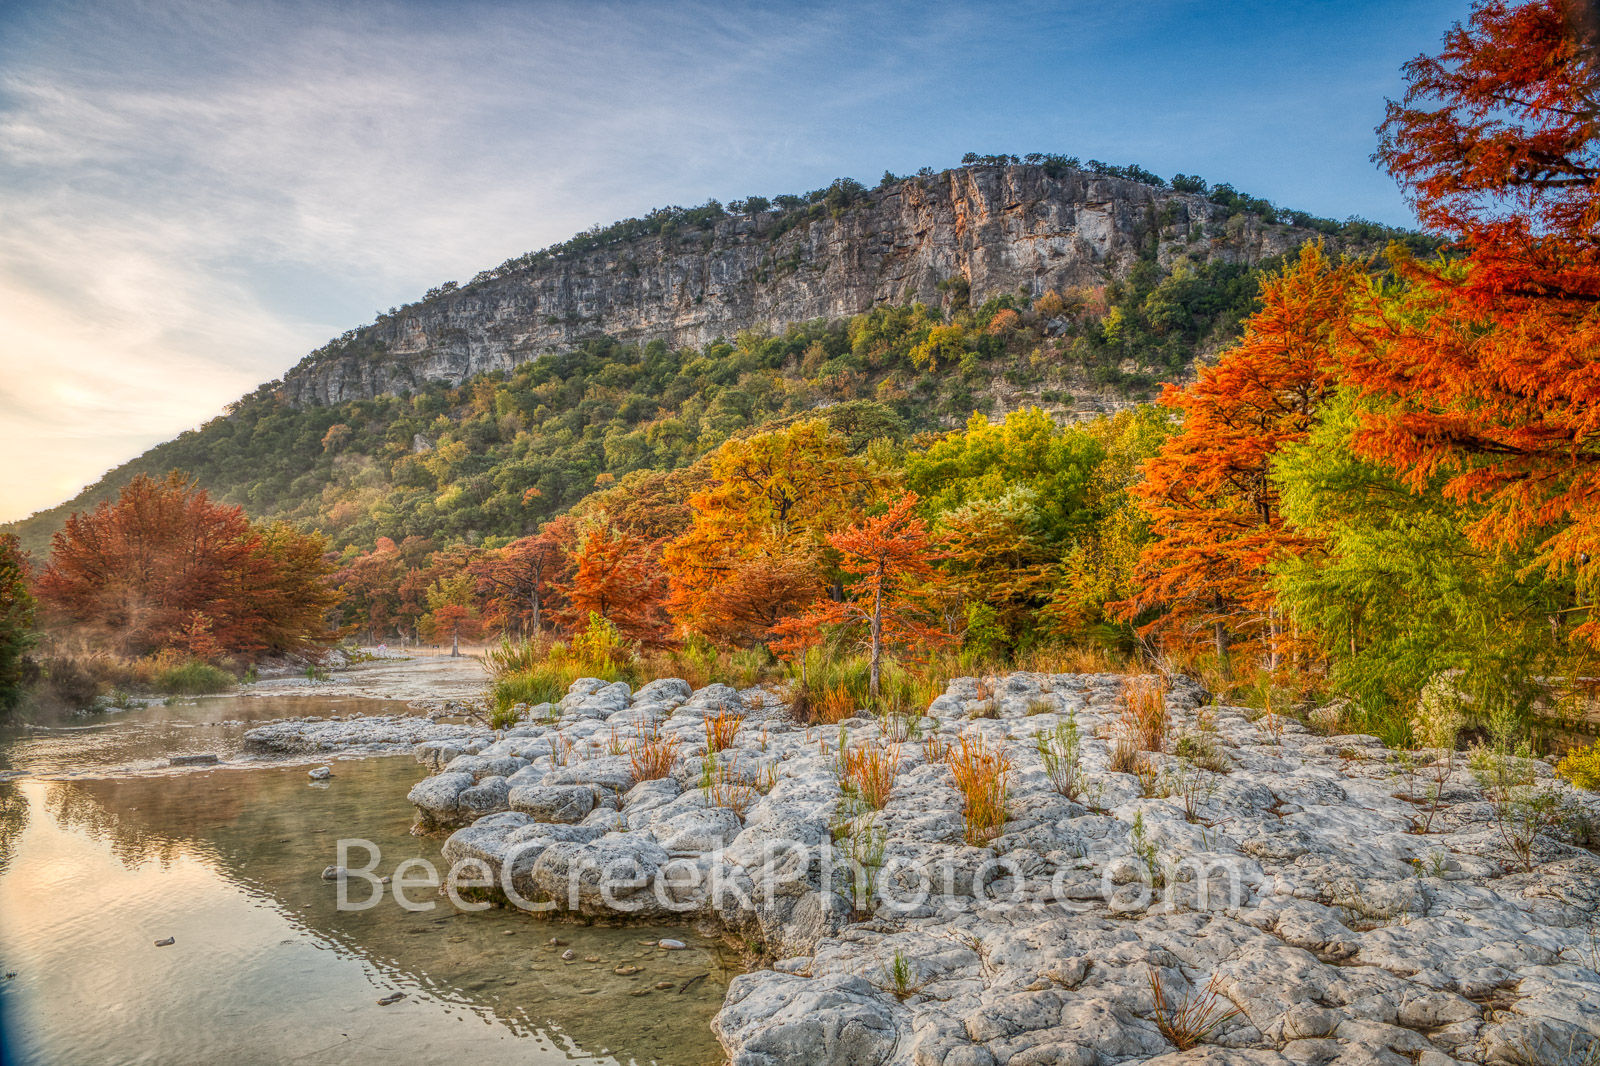 old baldy, fall colors, fall, autumn, landscape, texas hill country, bald cypress, rocks, frio river, flowing, texas, fall landscape, fall scenery, autumn scenery, colorful, colors, rocky, limestone, , photo